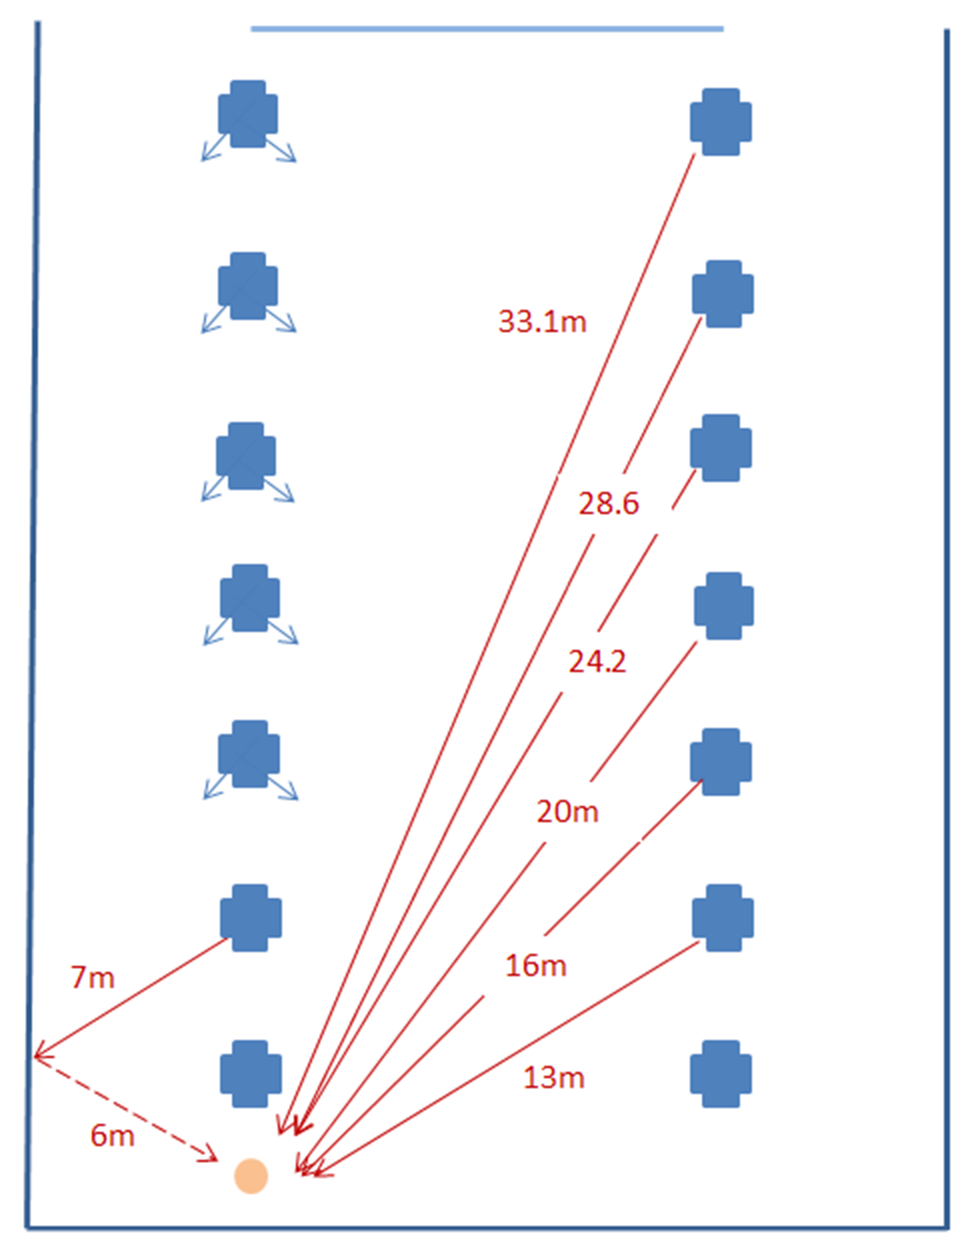 a diagram of sound arrivals from a cathedral sound system